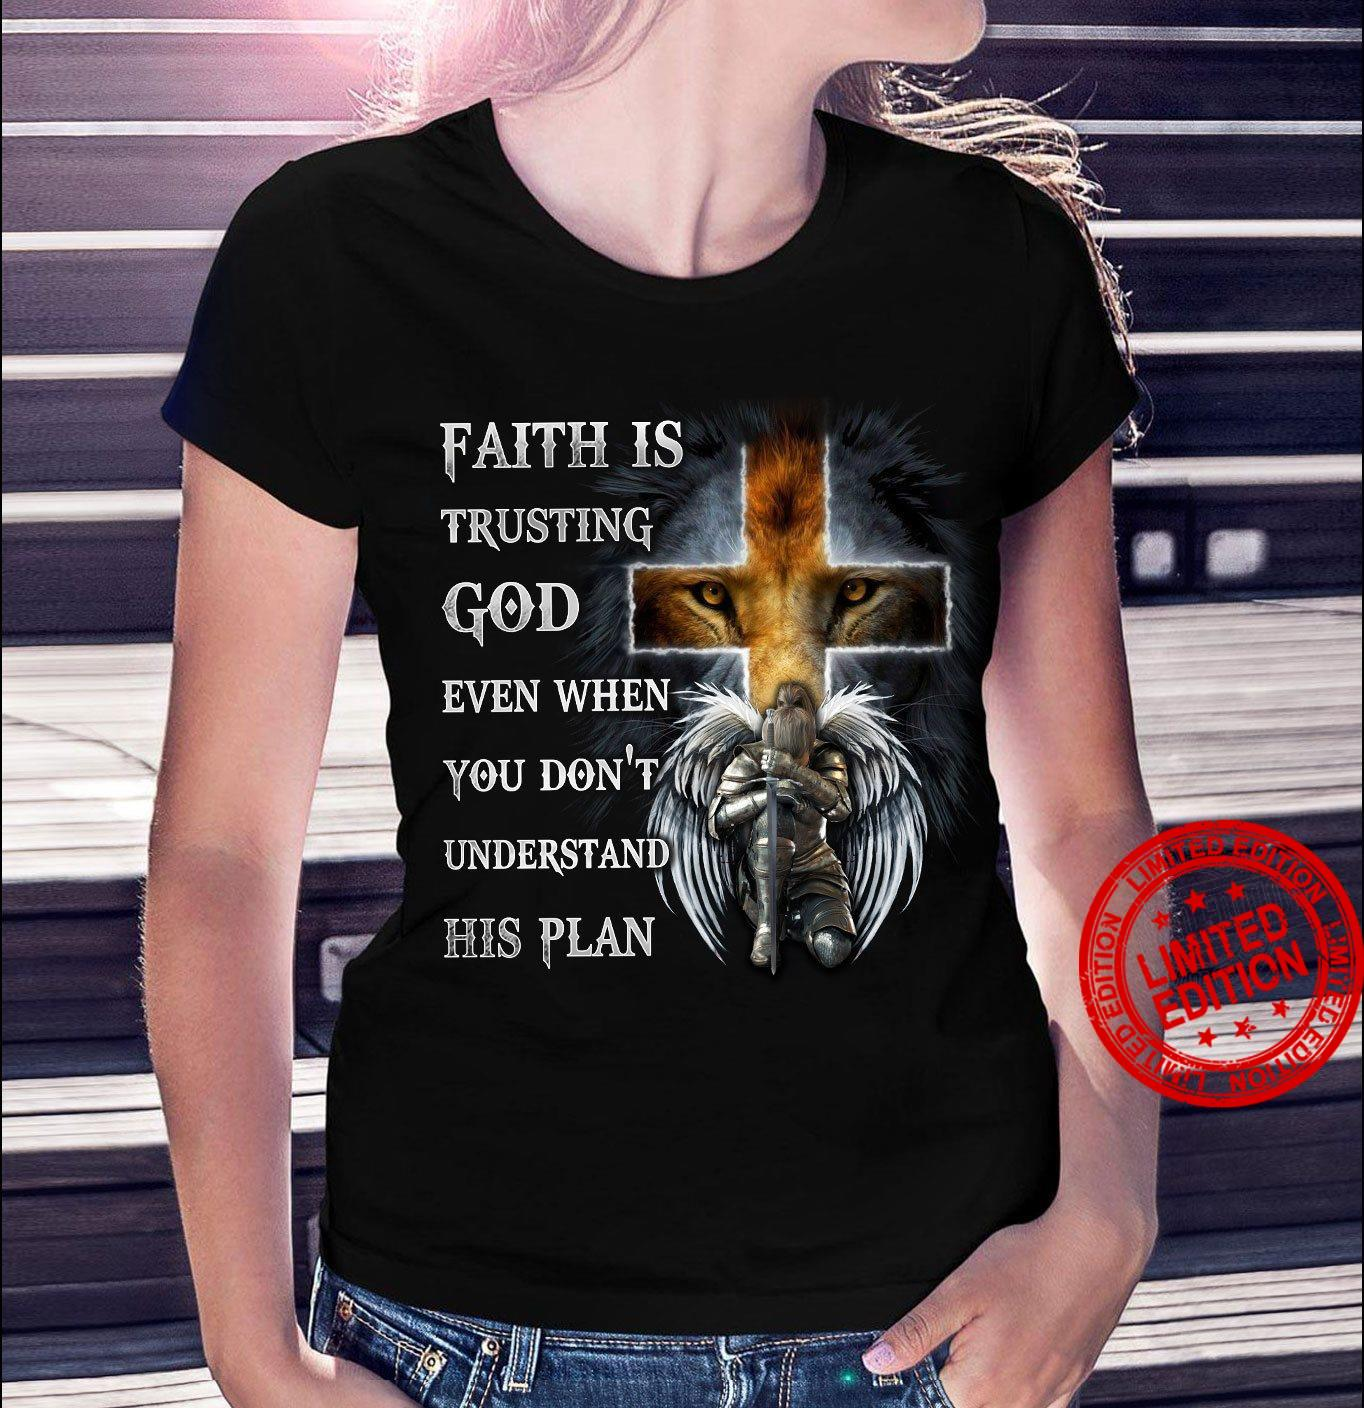 Faith Is Trusting God Even When You Don't Understand His Plan Shirt